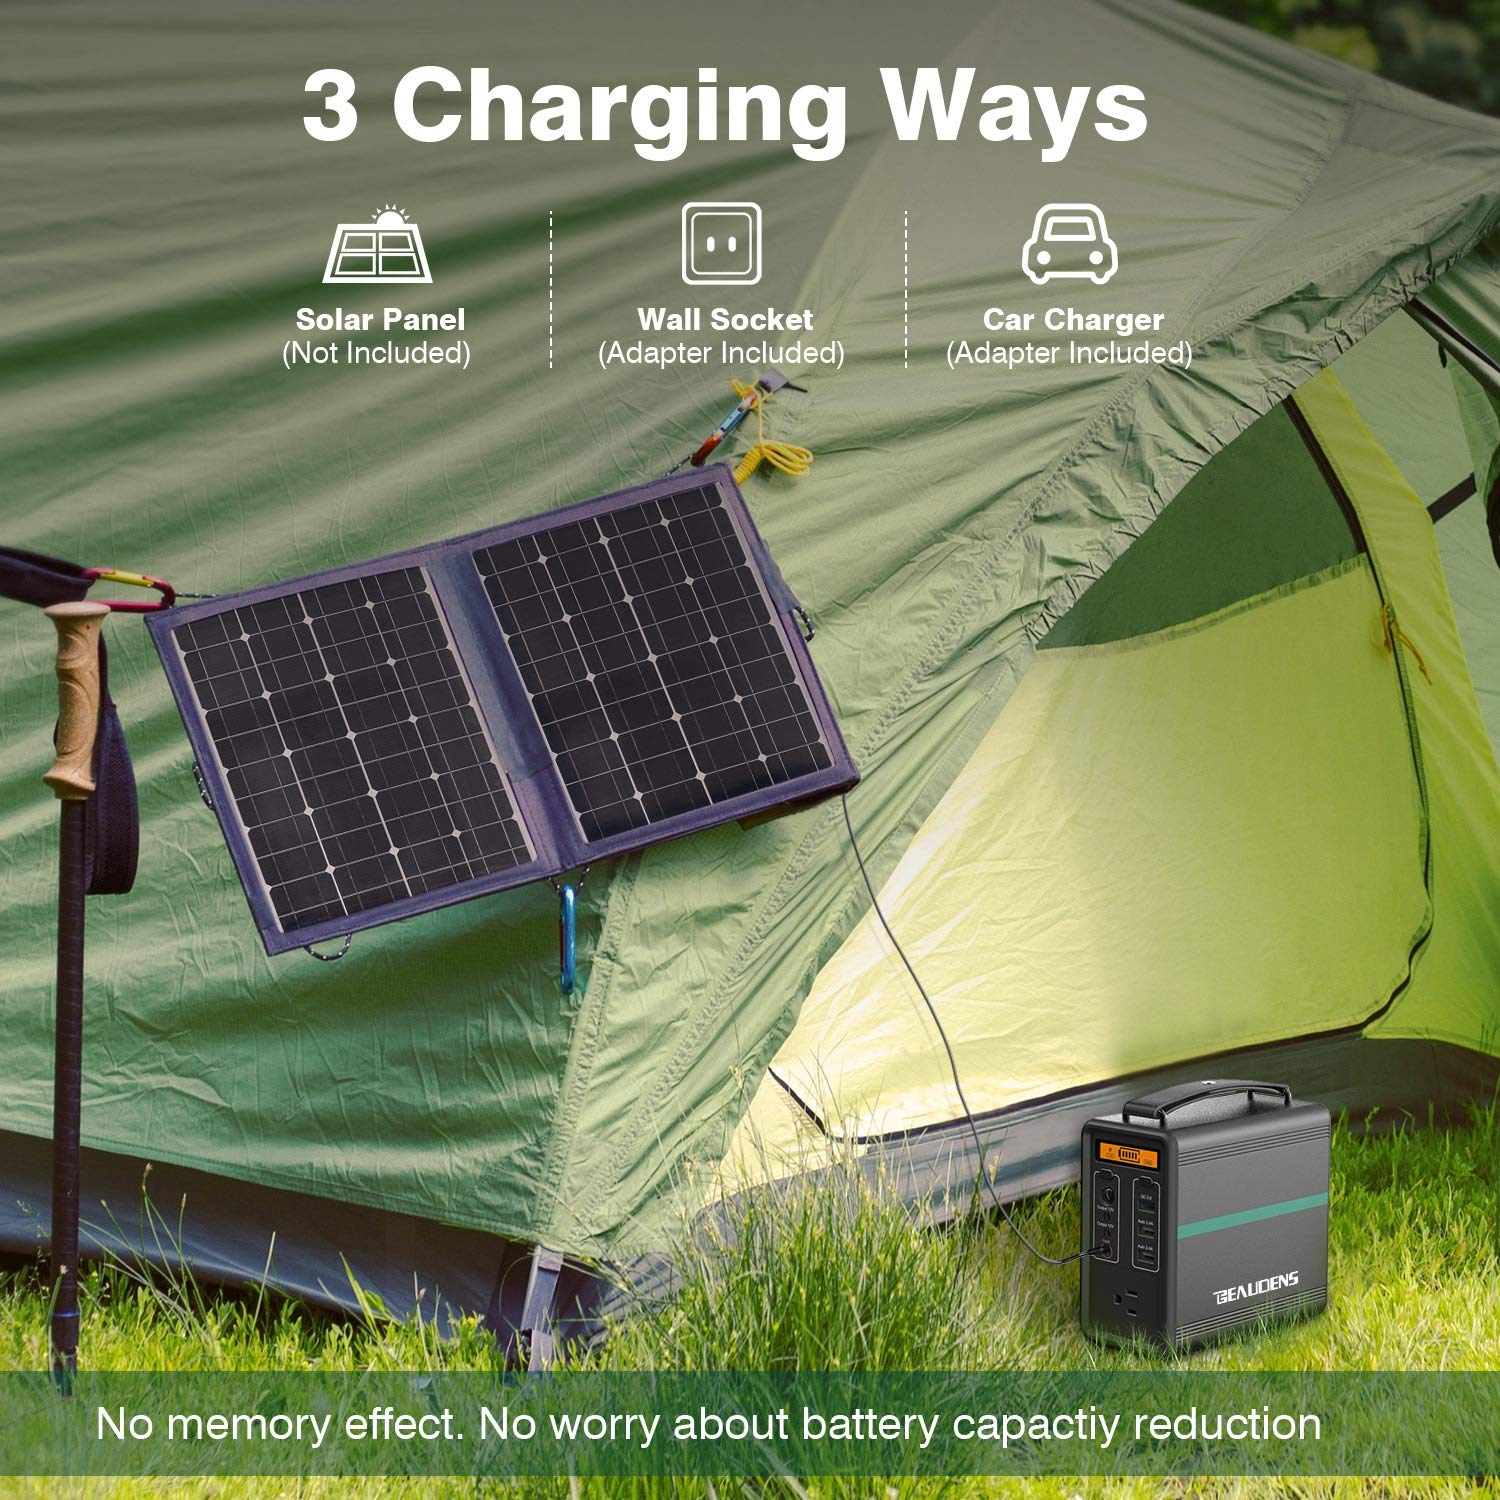 BEAUDENS 166Wh Portable Power Station, Lithium Iron Phosphate Battery, 2000 Cycles, 10 Years Battery Life, with Multiple Ports, Perfect for Tablet, Laptop, Appliances Use by BEAUDENS (Image #4)